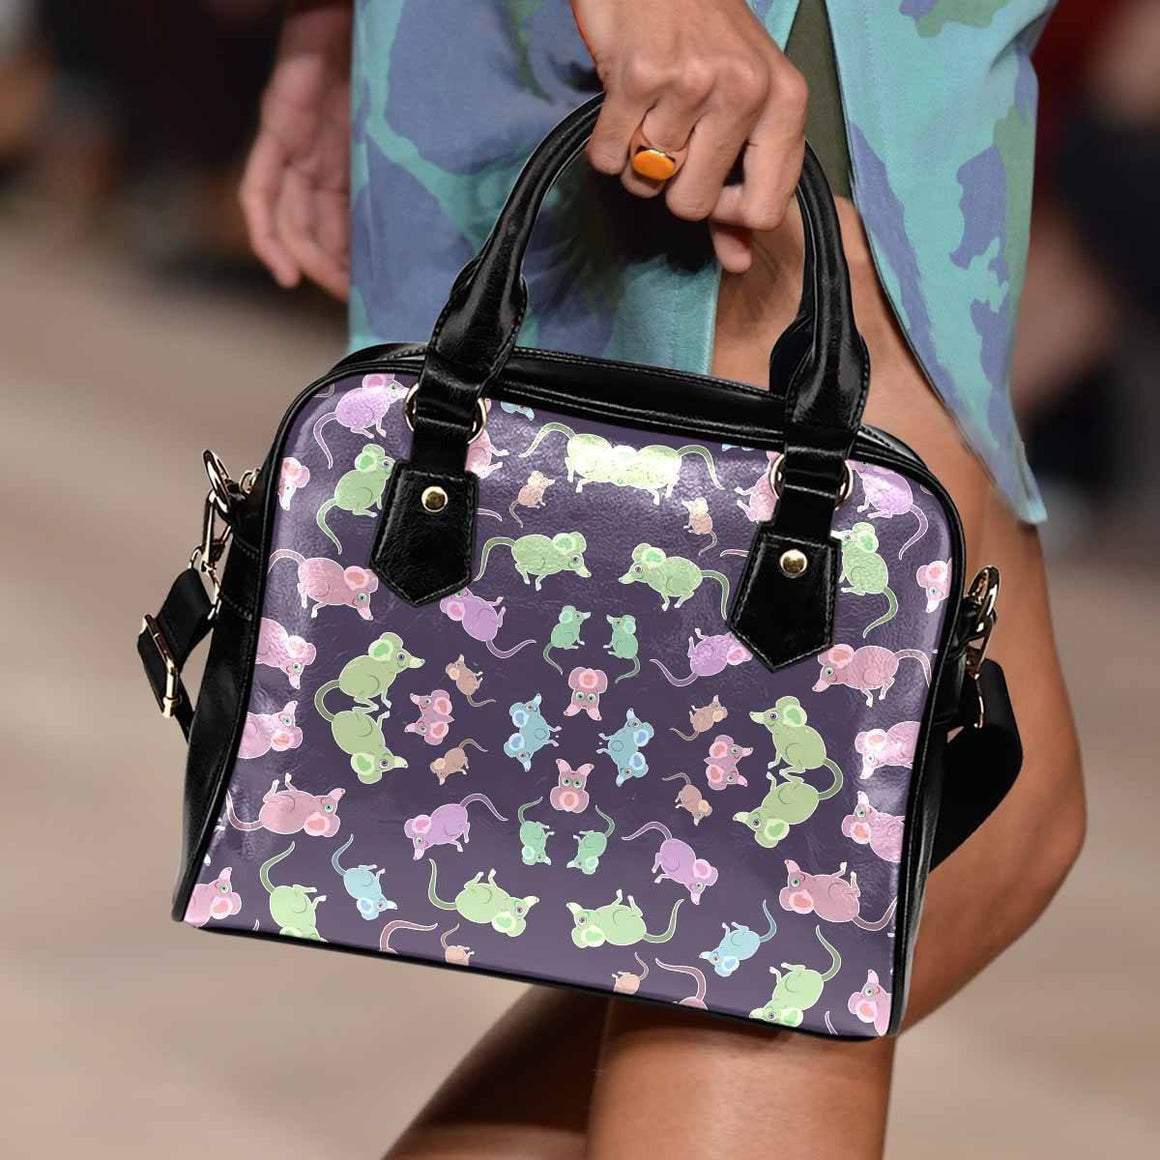 Mouse Shoulder Bag